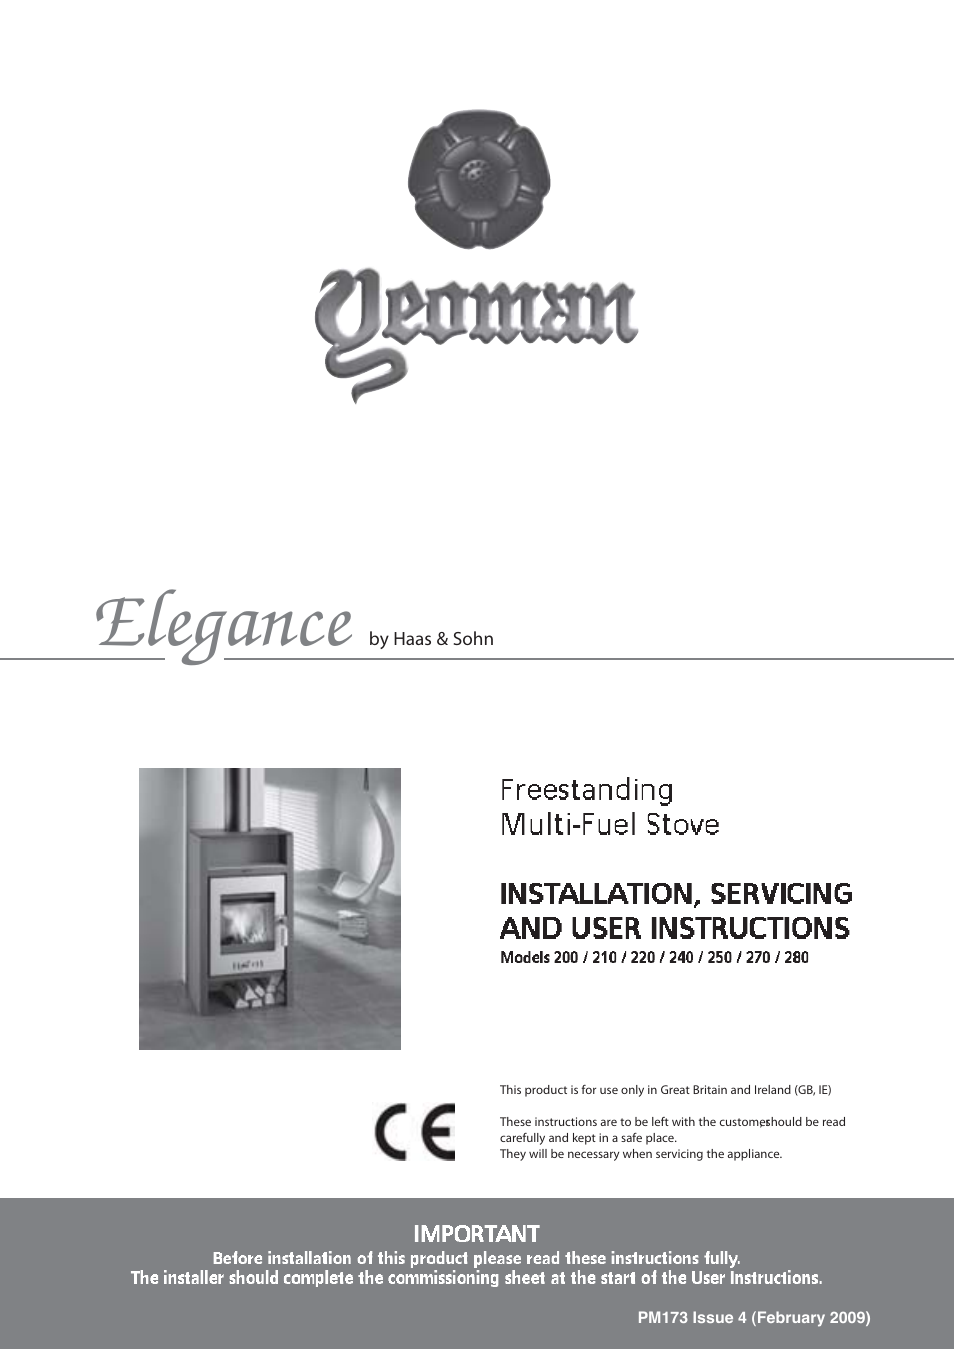 yeoman elegance by haas sohn 270 user manual 24 pages. Black Bedroom Furniture Sets. Home Design Ideas